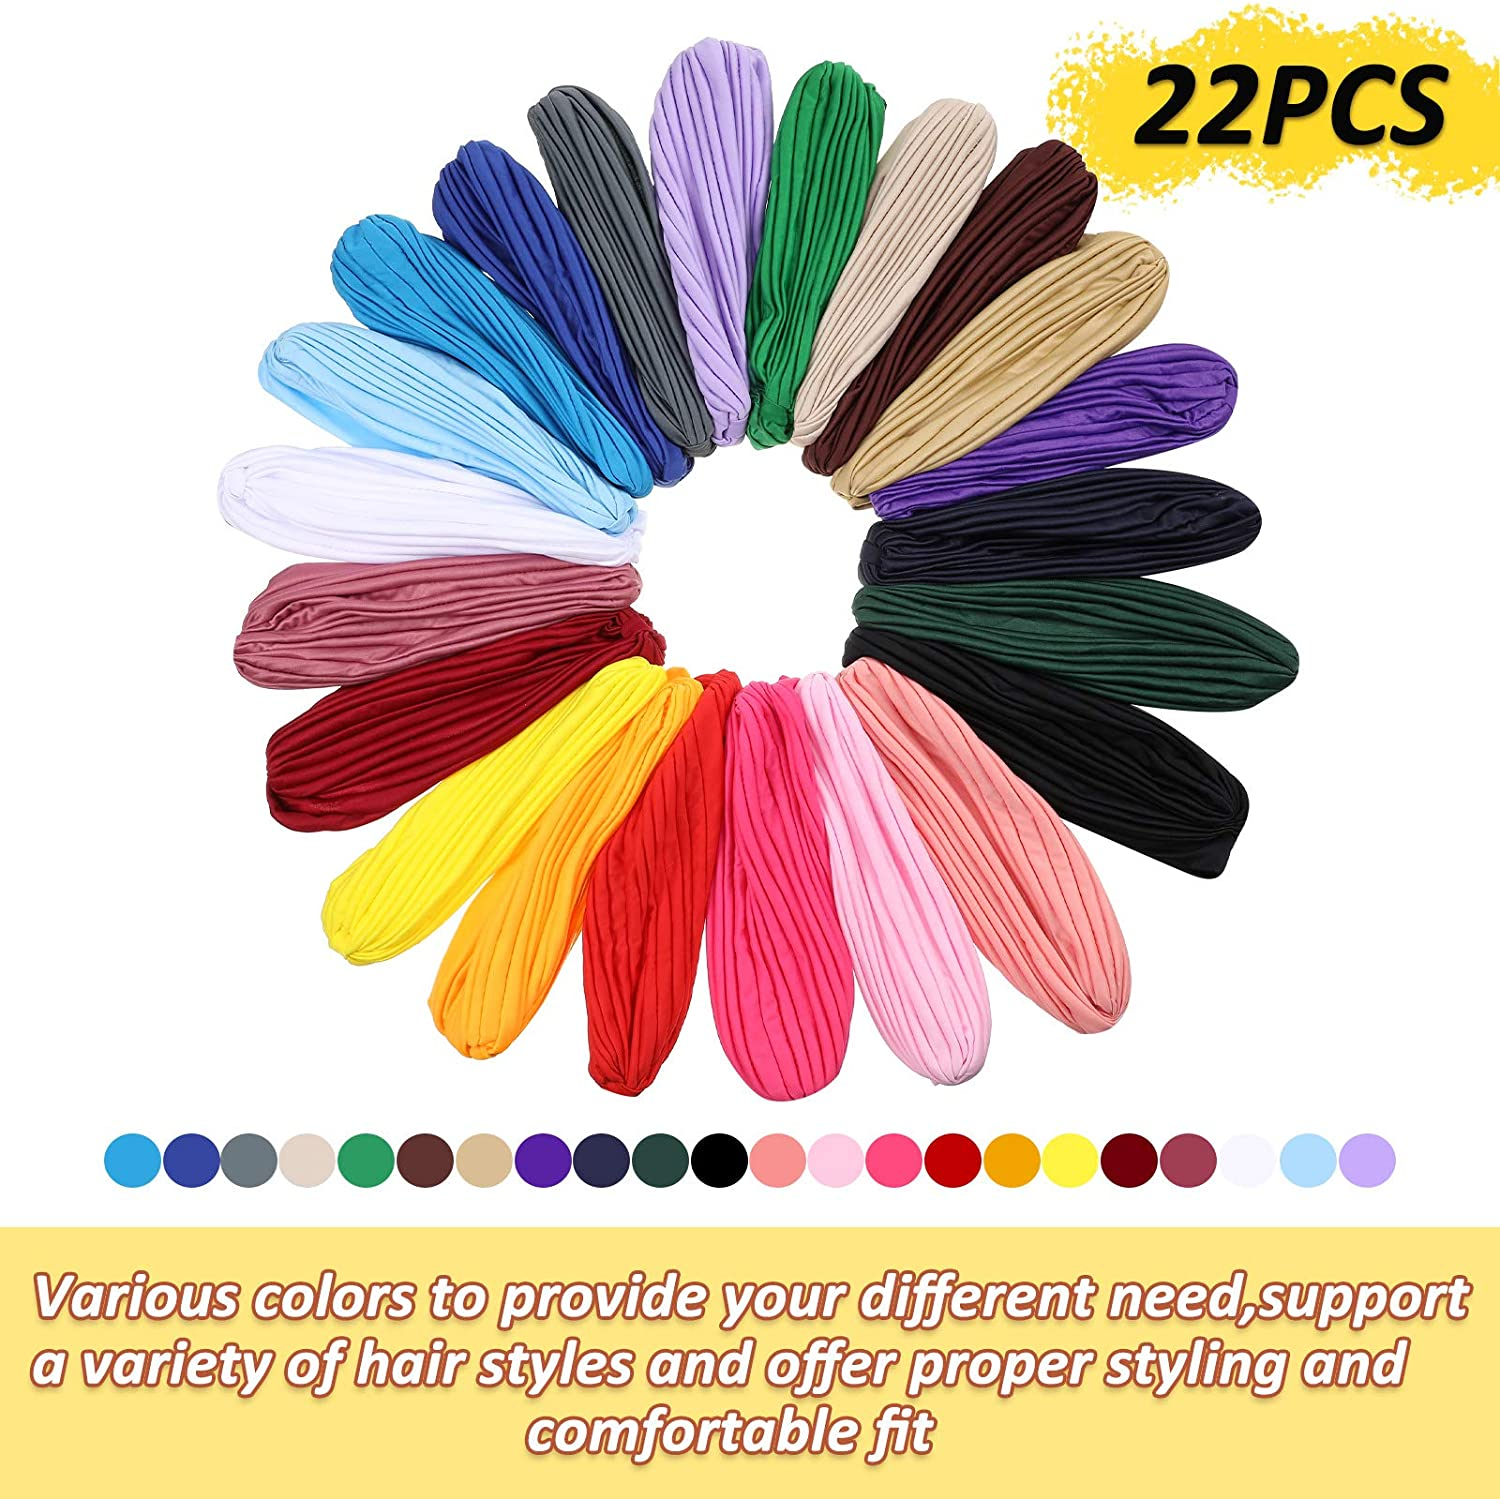 22 Pieces Stretch Turbans Head Beanie Cover Twisted Pleated Headwrap Assorted Colors Hair Cover Beanie Hats for Women Girls